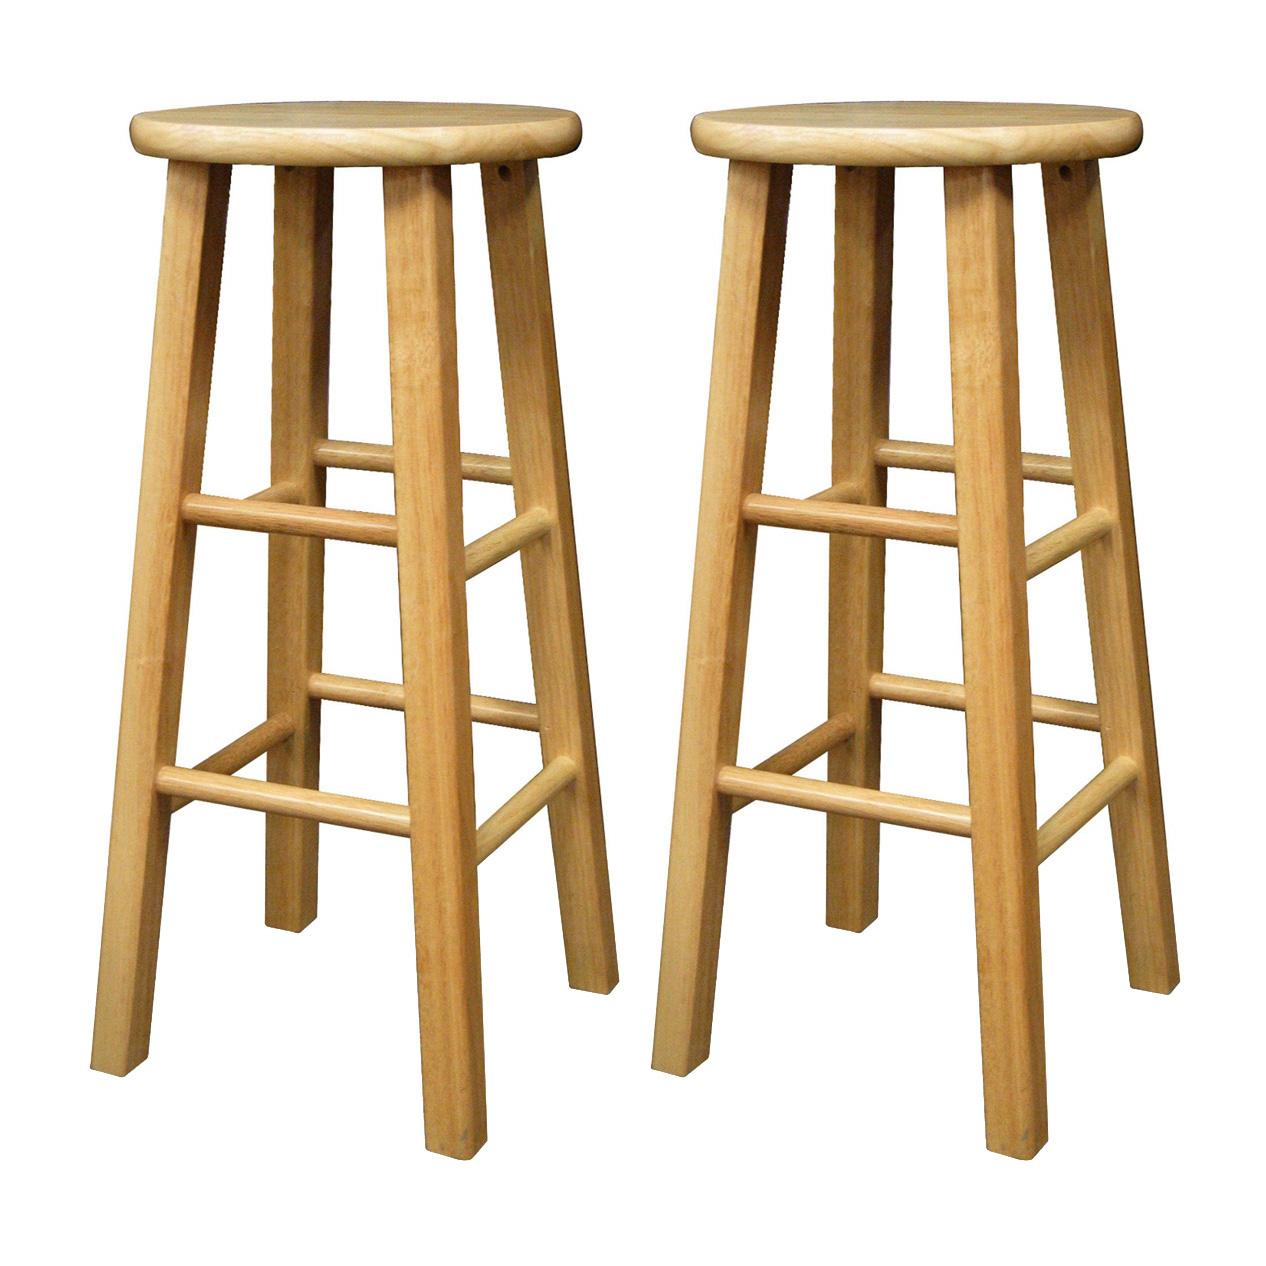 Set of 2 Square Leg 29  Stool Assembled  sc 1 st  Amazon.com & Amazon.com: Winsome Wood 29-Inch Square Leg Barstool with Natural ... islam-shia.org